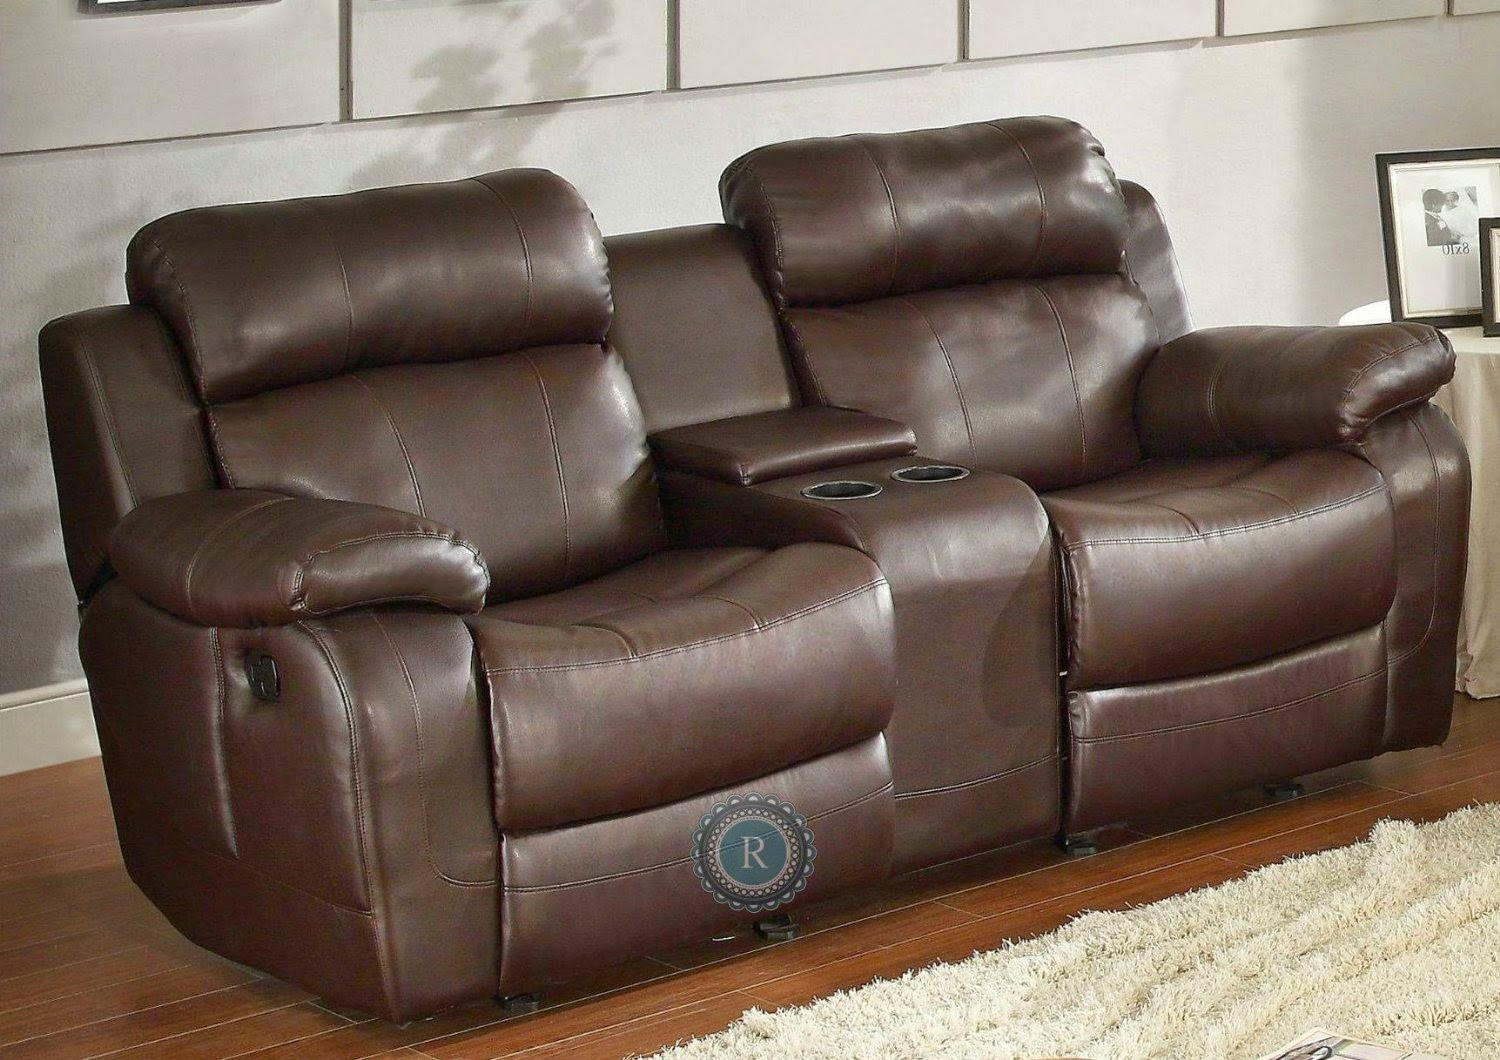 Modern cheap reclining sofa reviews reclining sofa with center console Reclining loveseat with center console